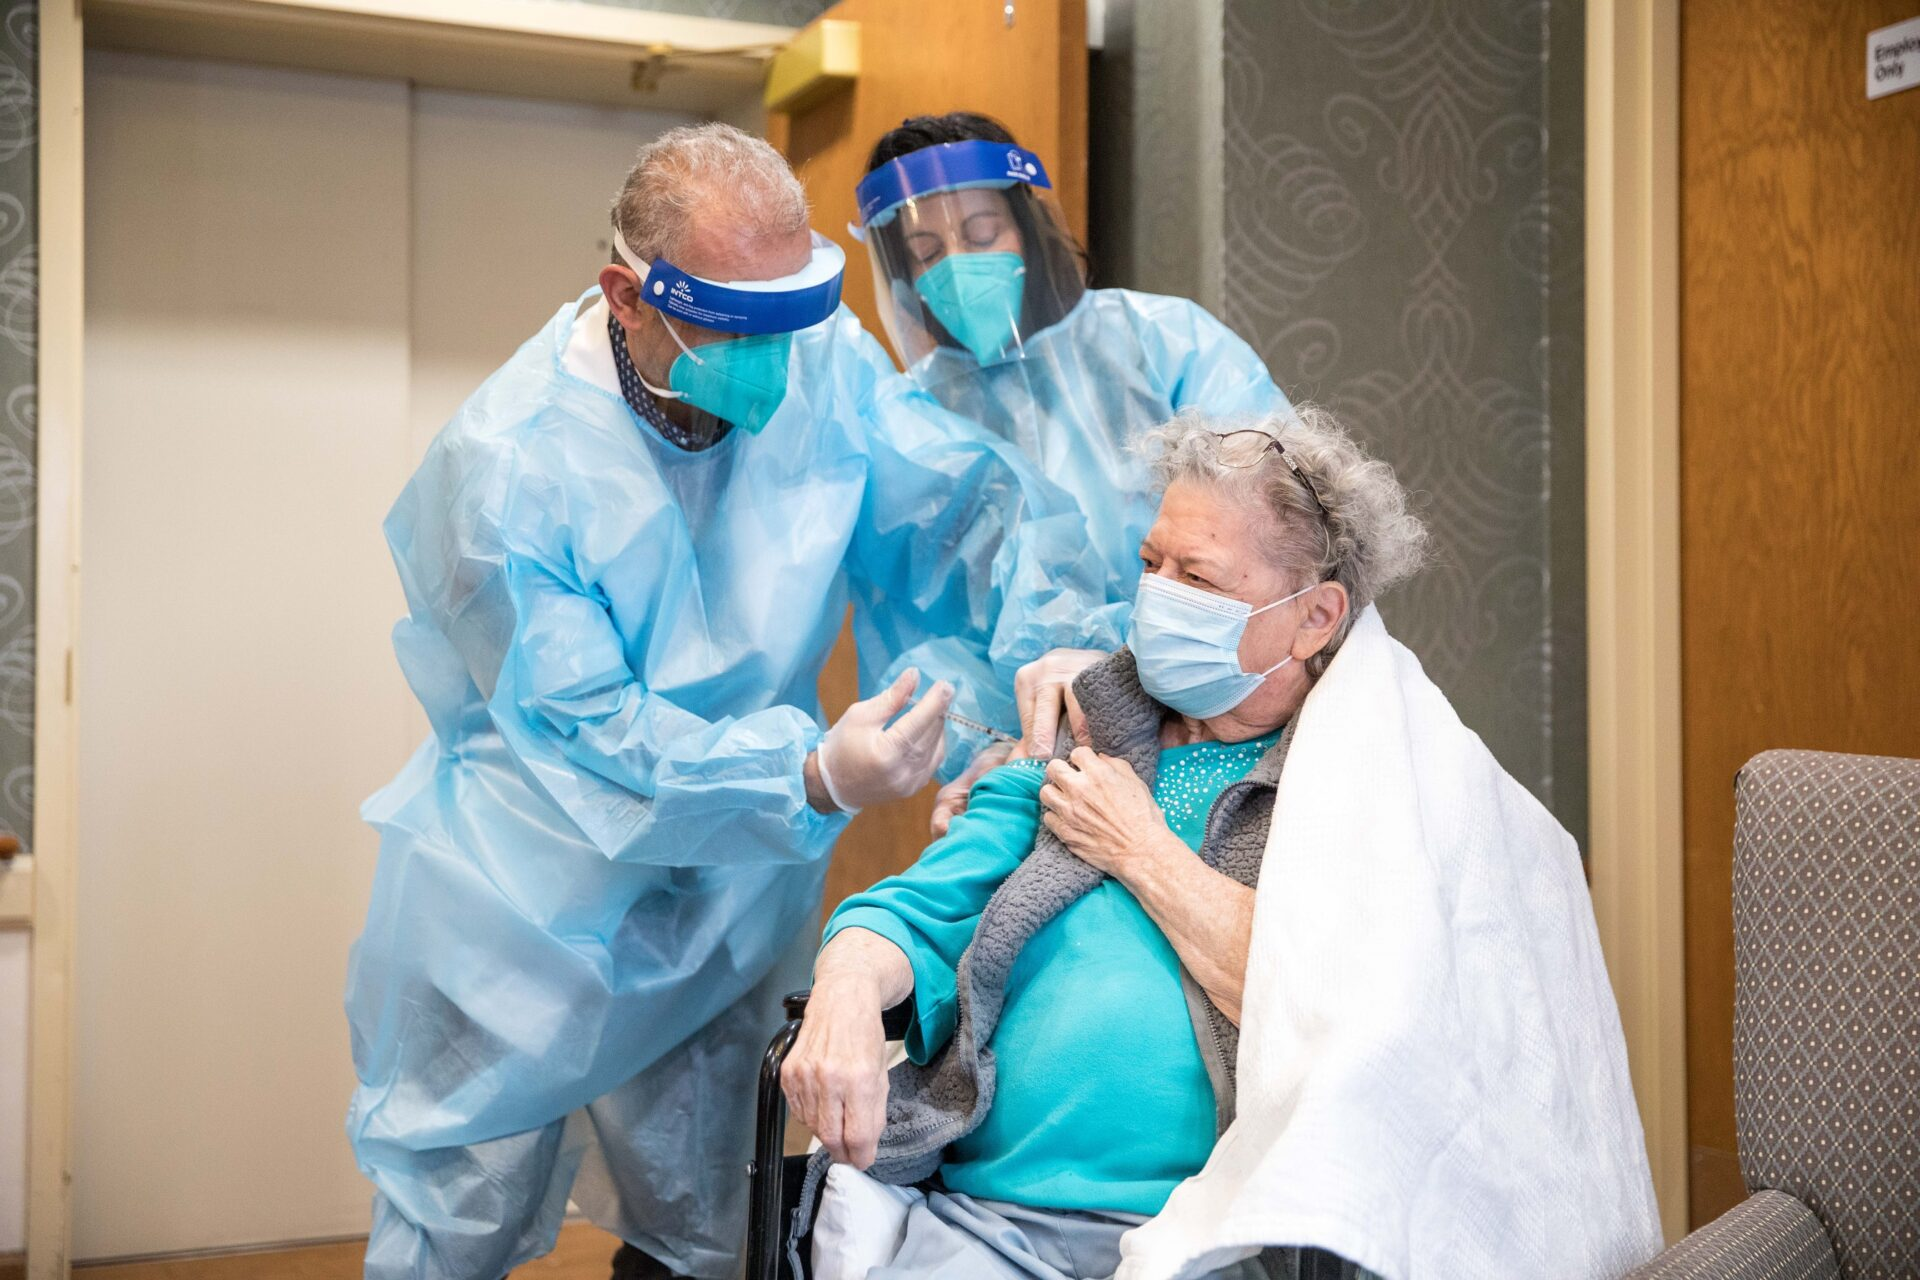 CVS personnel administer a Covid-19 vaccine at The Reservoir long term care facility in Hartford, Conn., on Friday, Dec. 18, 2020. (Source: CVS)